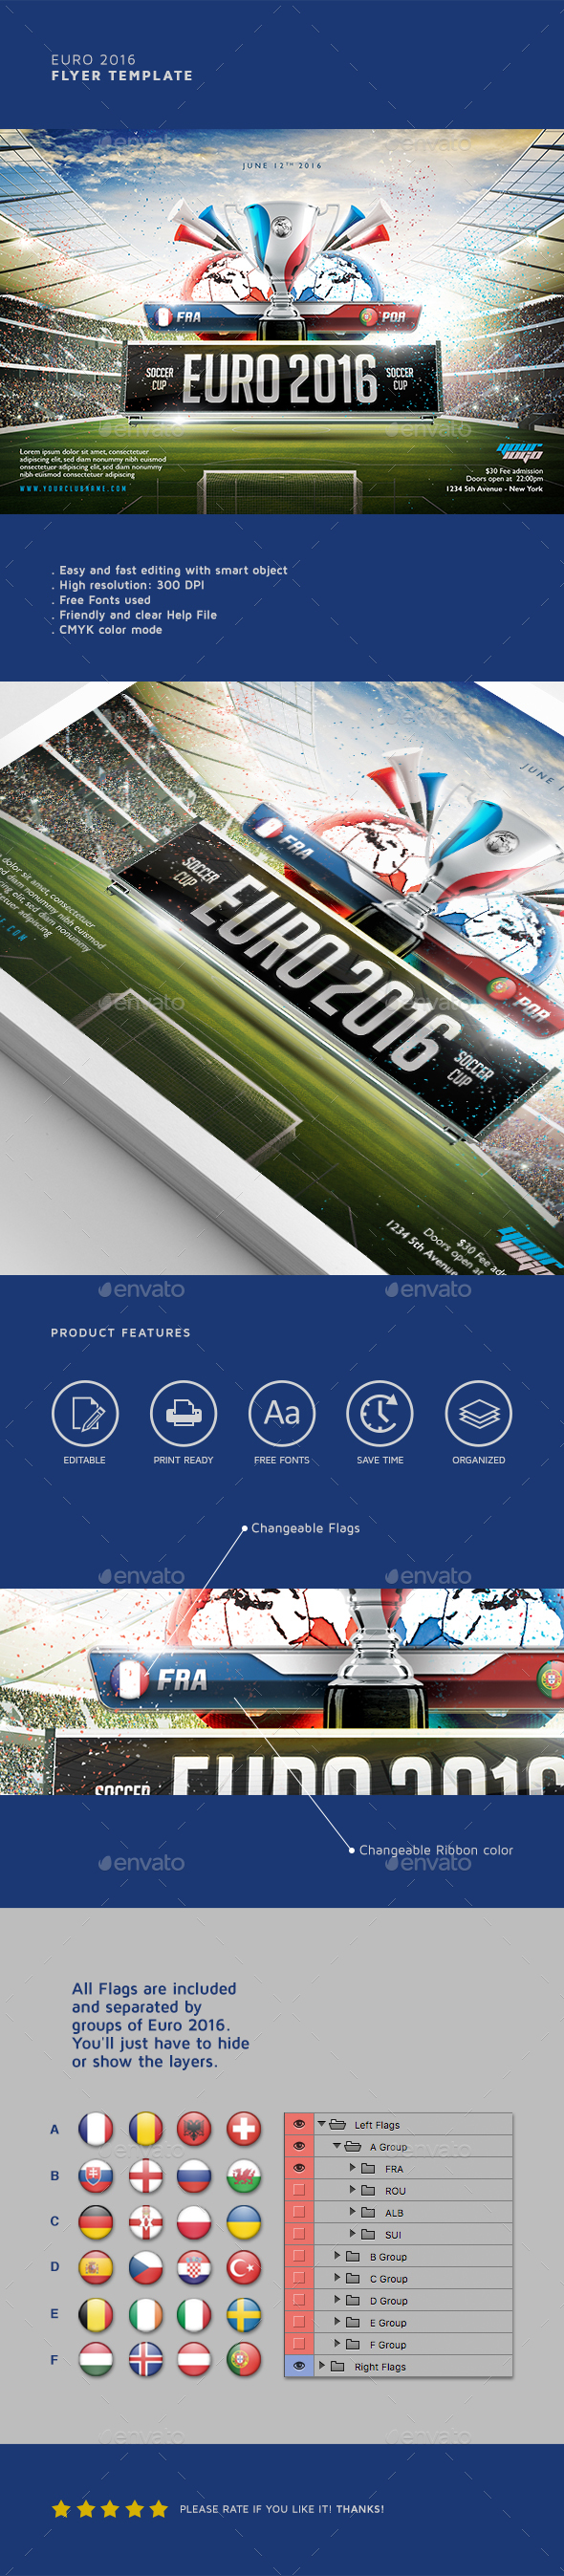 Euro 2016 Flyer Template - Sports Events